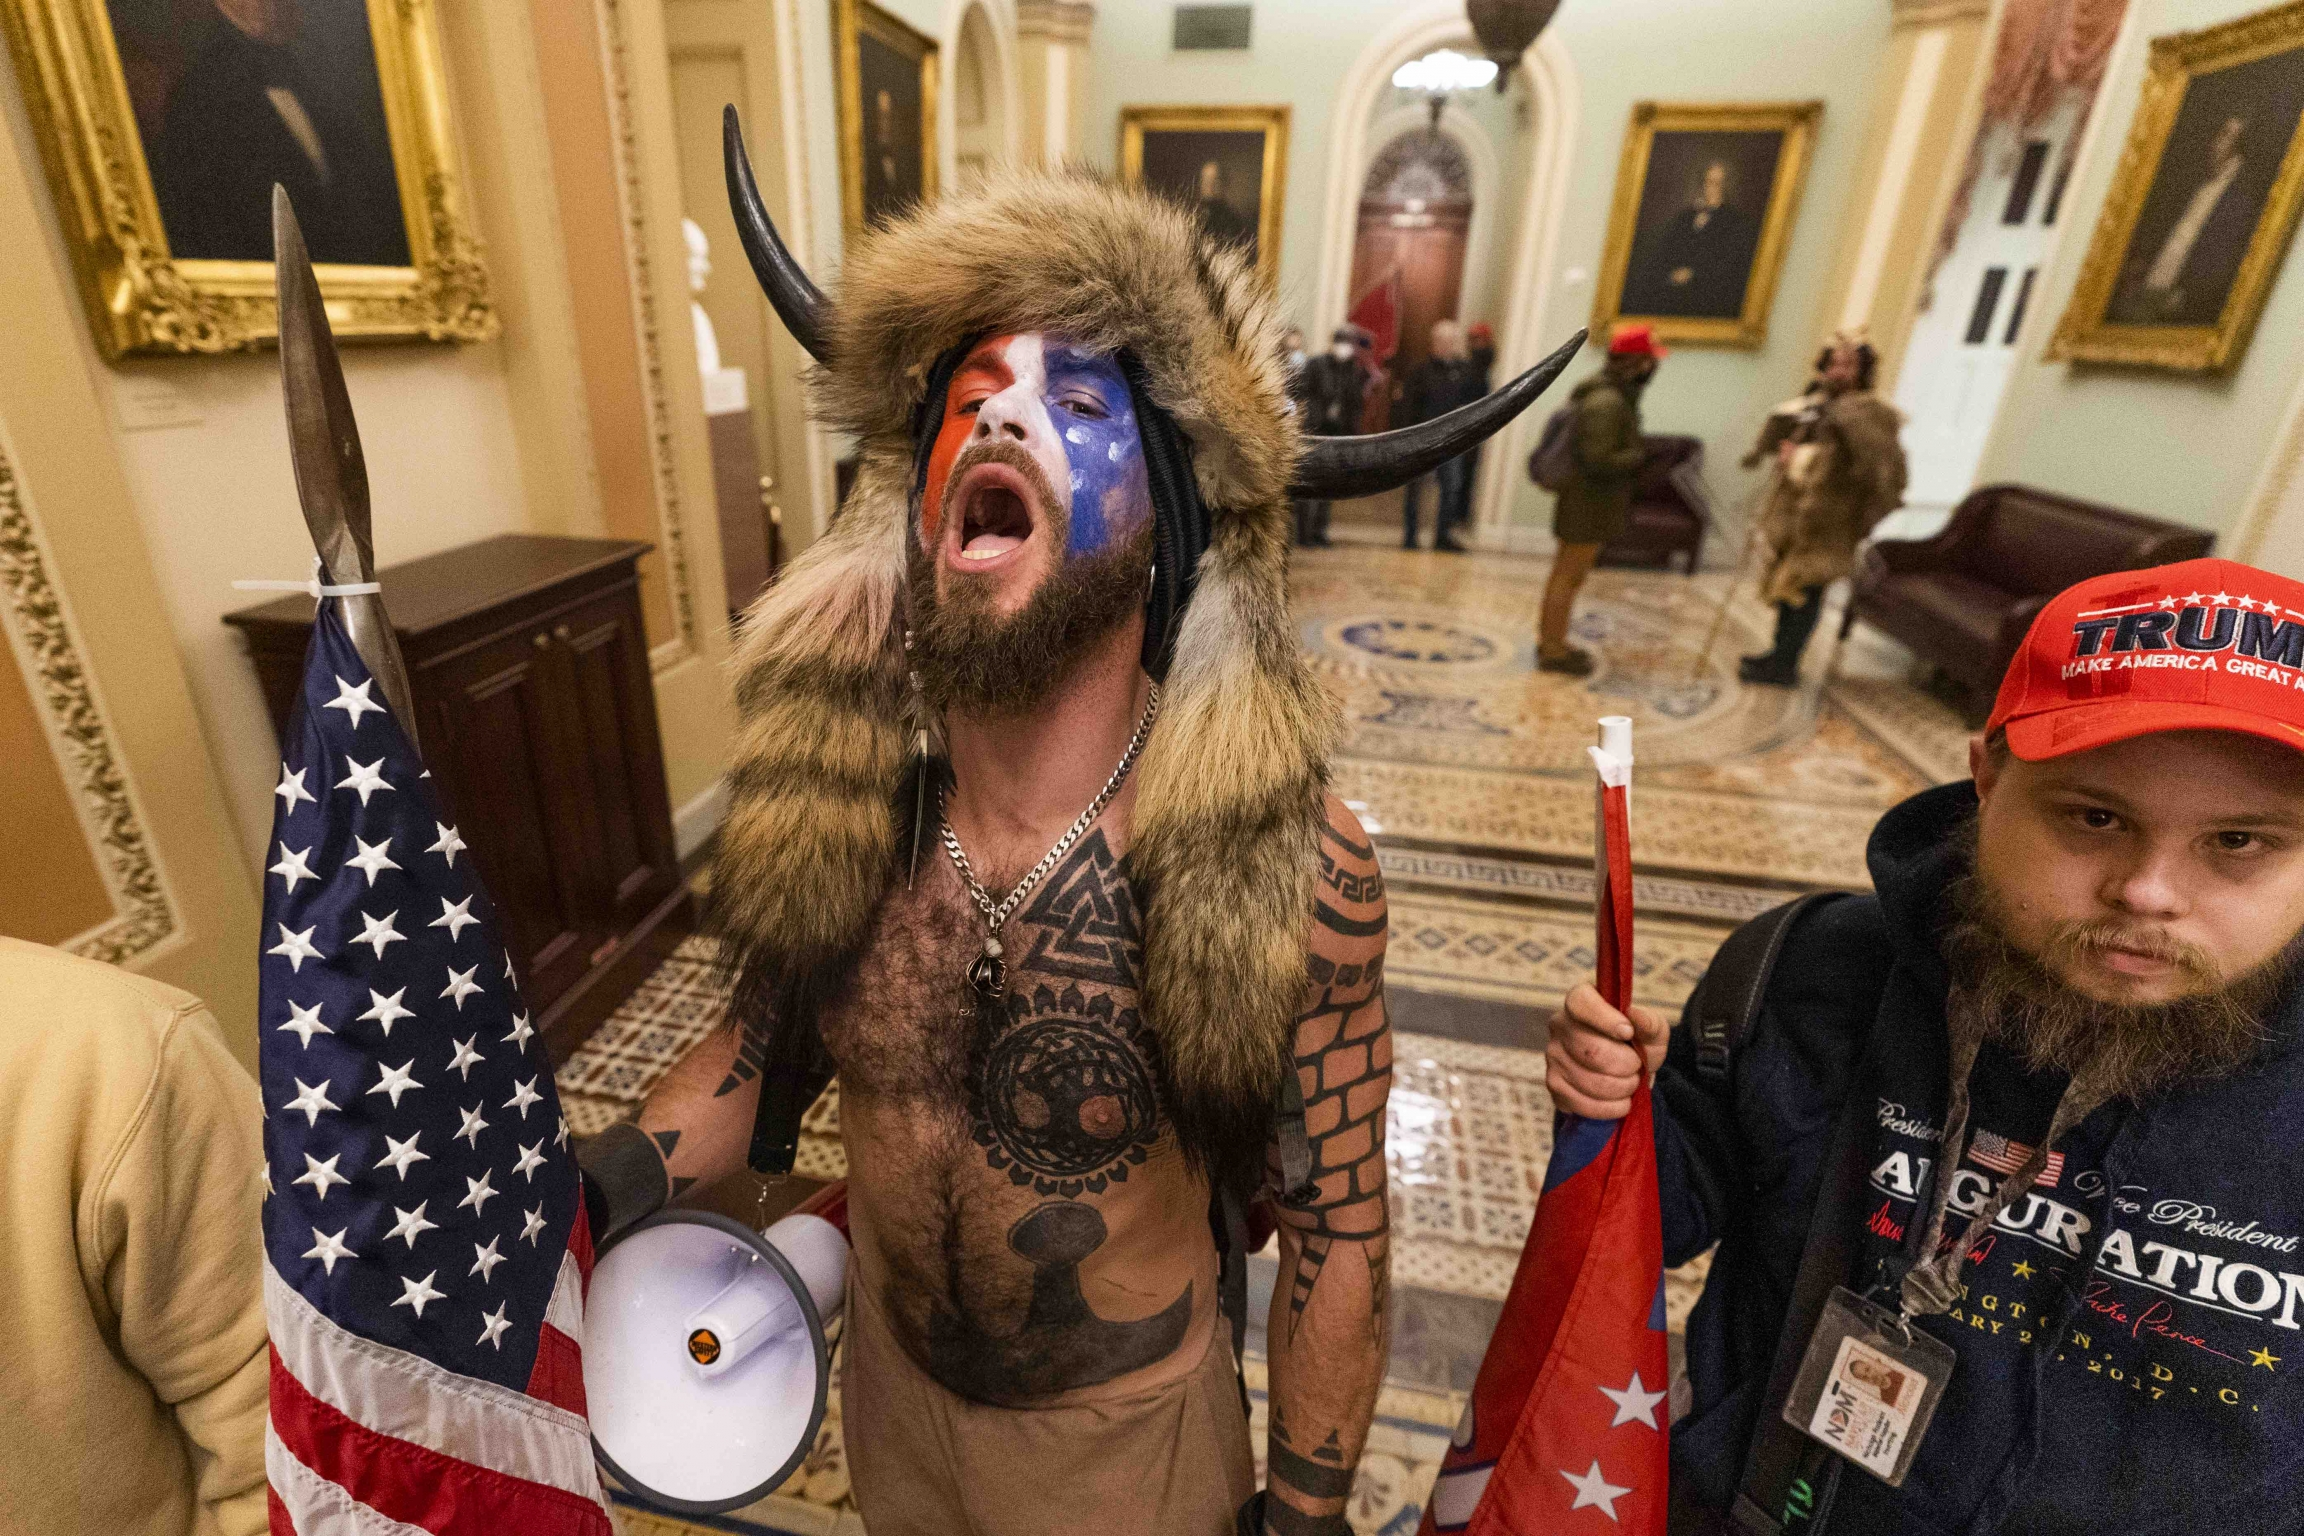 A supporter of President Donald Trump wearing horns and animal skins on his head chants outside the Senate chamber inside the Capitol, Wednesday, Jan. 6, 2021, in Washington, DC.